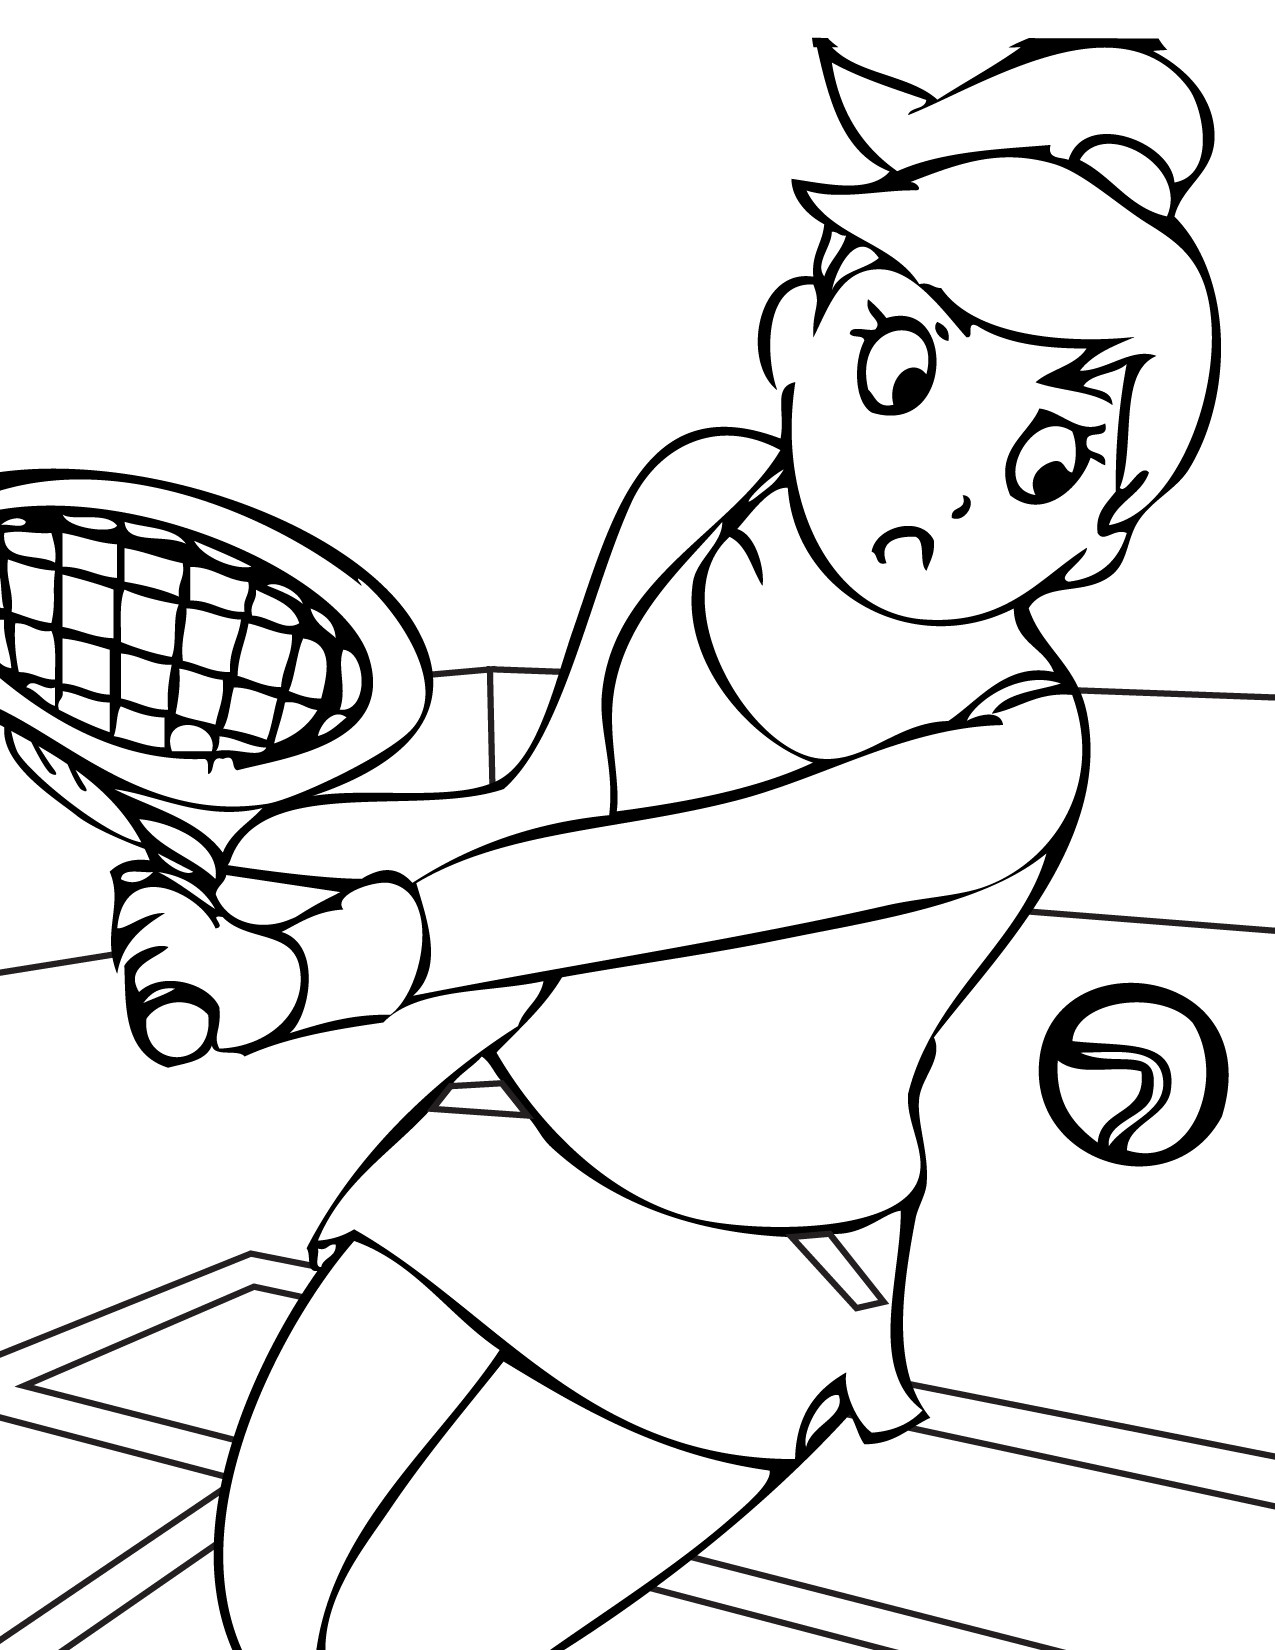 Best ideas about Sports Coloring Pages For Girls . Save or Pin Tennis Sports Coloring pages for GIRLS Free Printable Now.